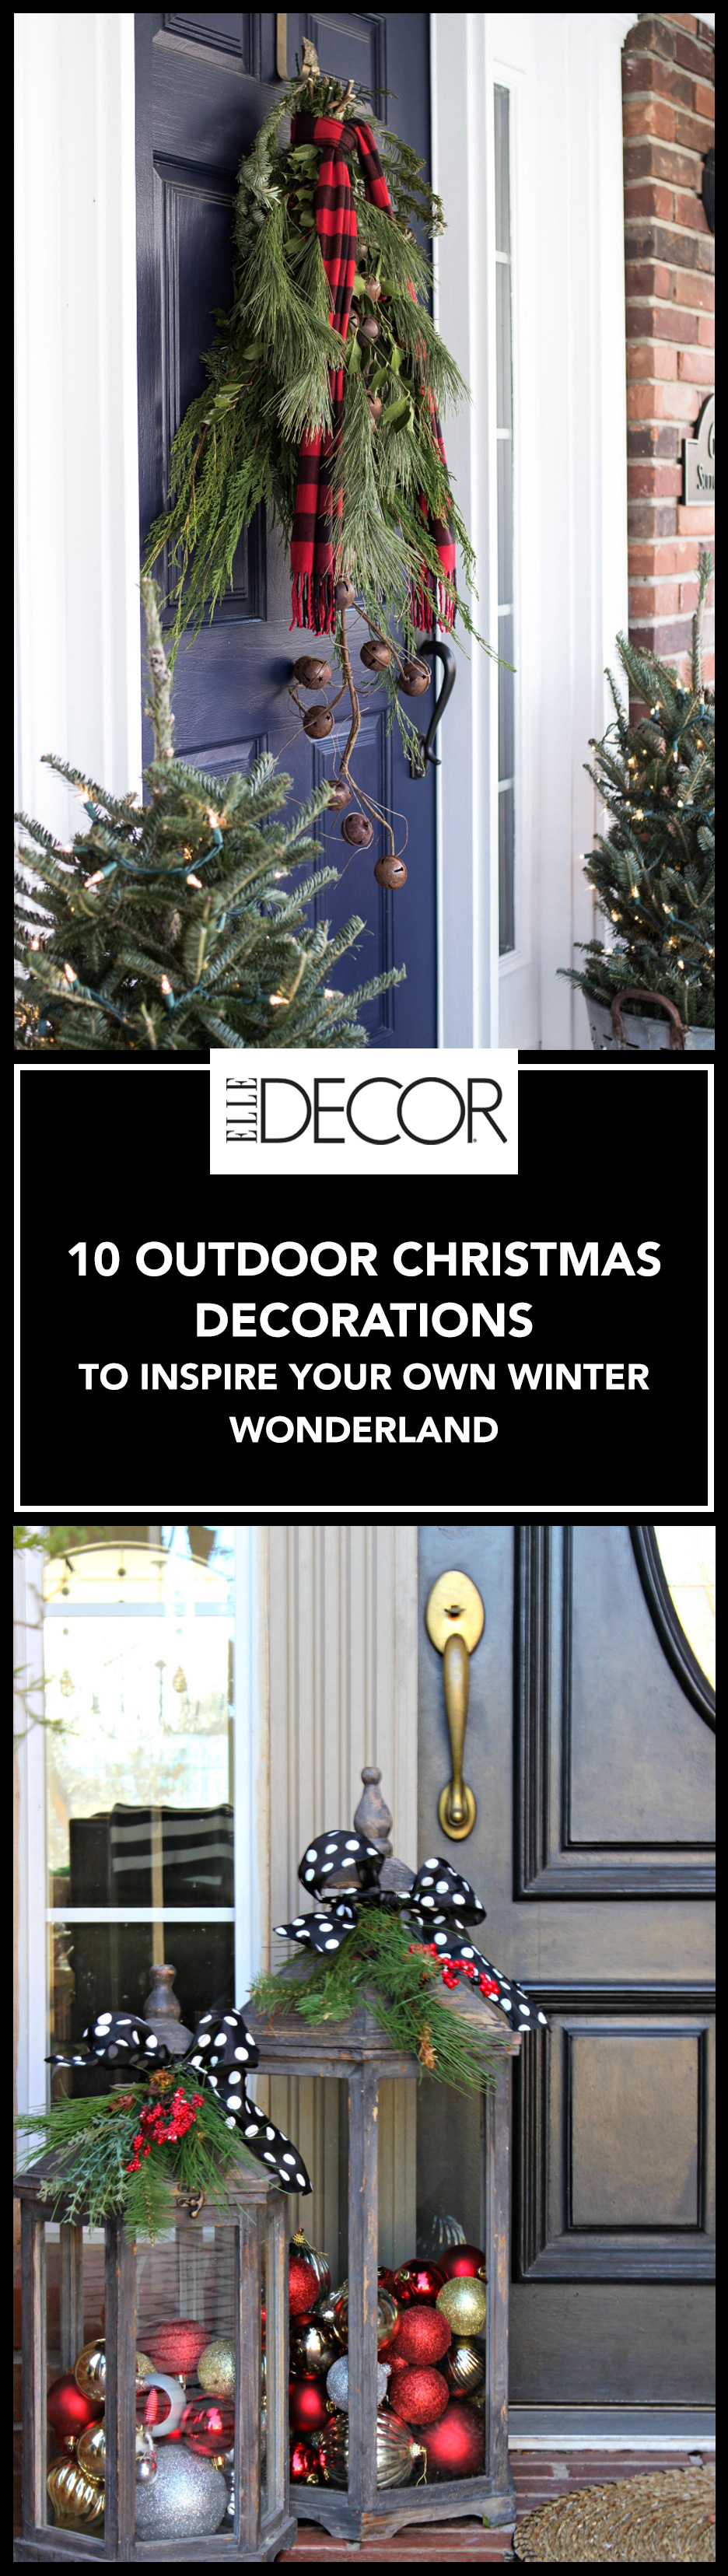 10 Outdoor Christmas Decorations To Inspire Your Own Winter Wonderland